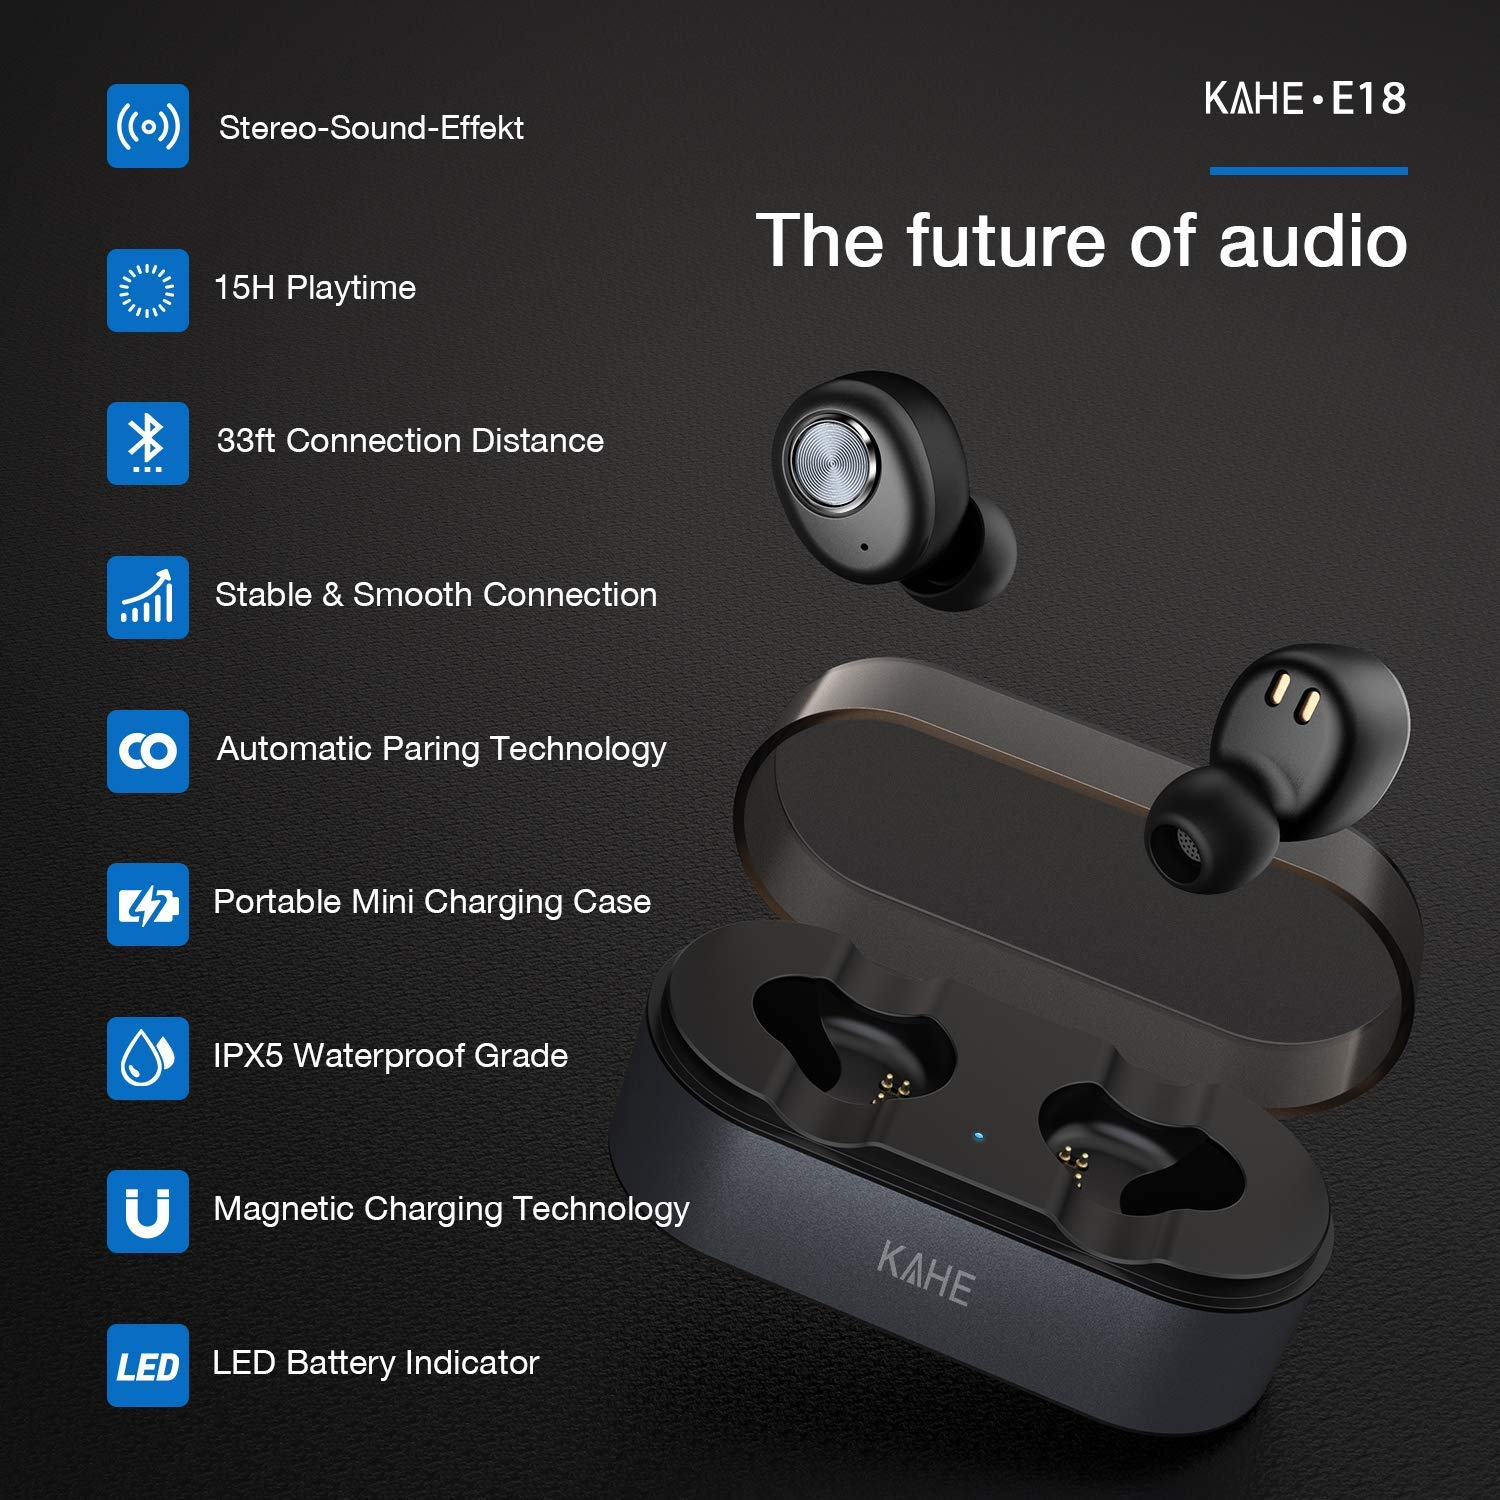 d3fced729df Amazon.com: Wireless Earbuds, KAHE E18 True Wireless Headphones Bluetooth  V5.0 Ear Buds HD Stereo Sound 15H Playtime TWS in-Ear Headset with Charging  Case, ...